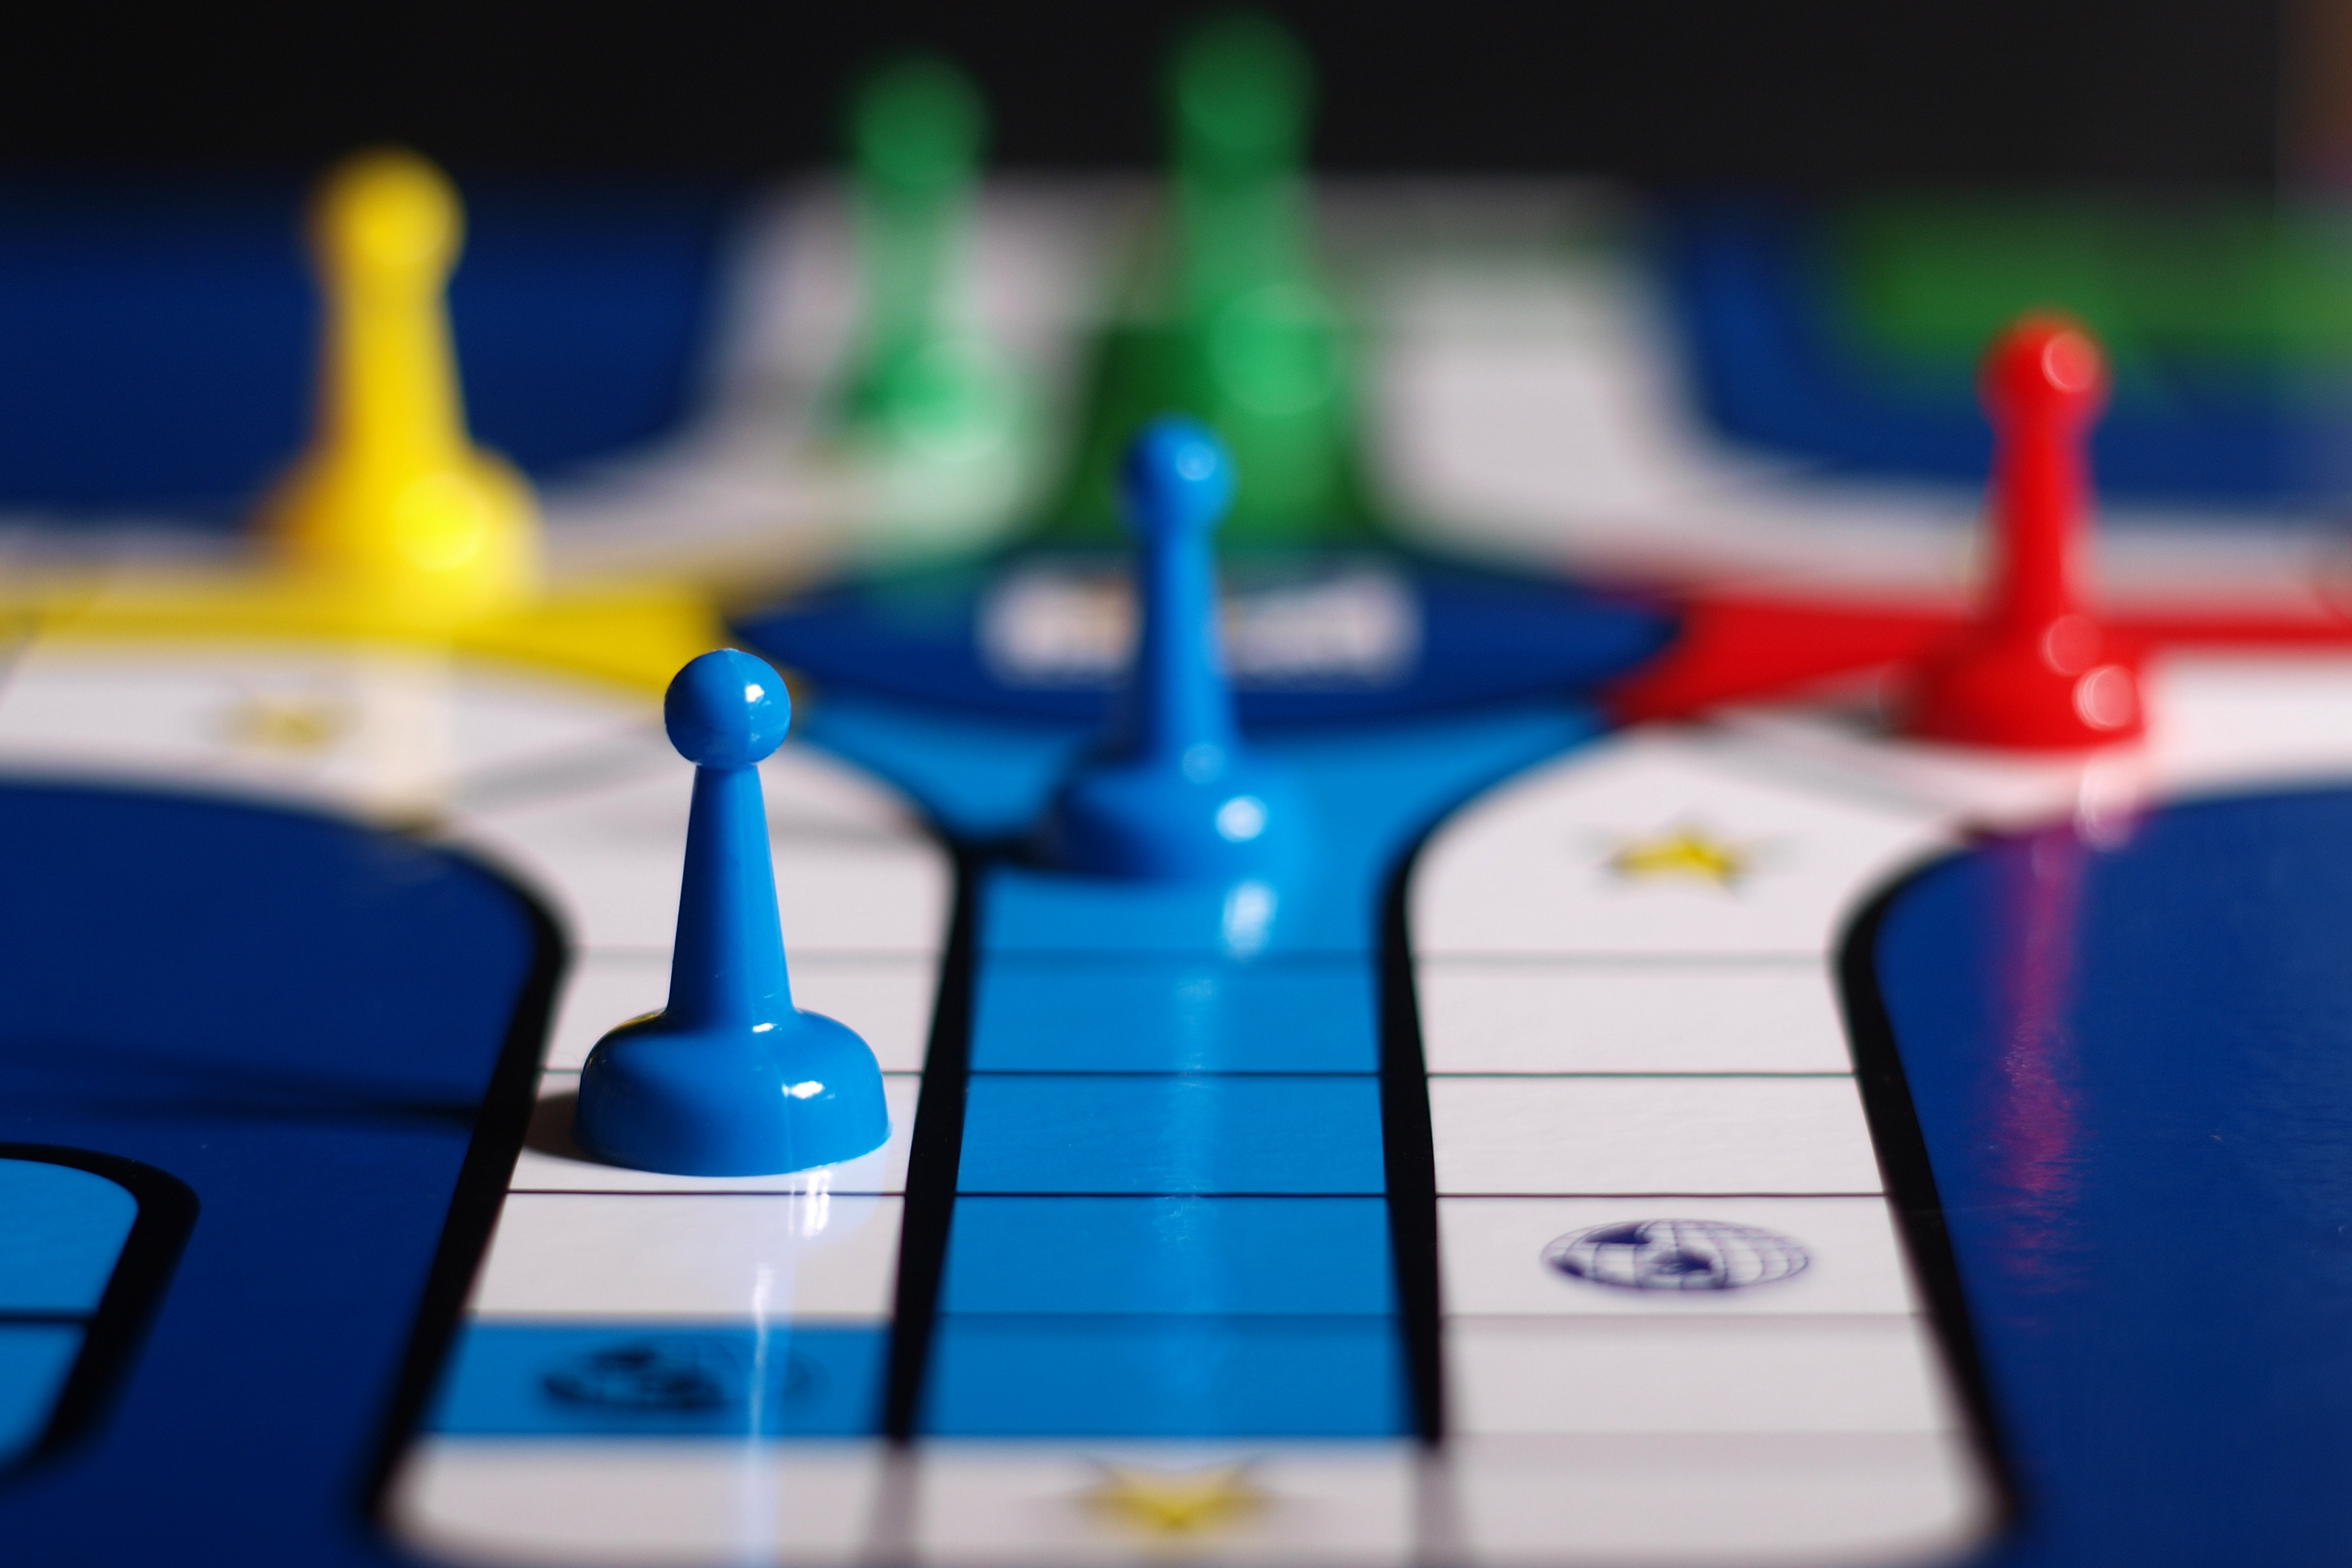 Save Up To $13 On Game Night